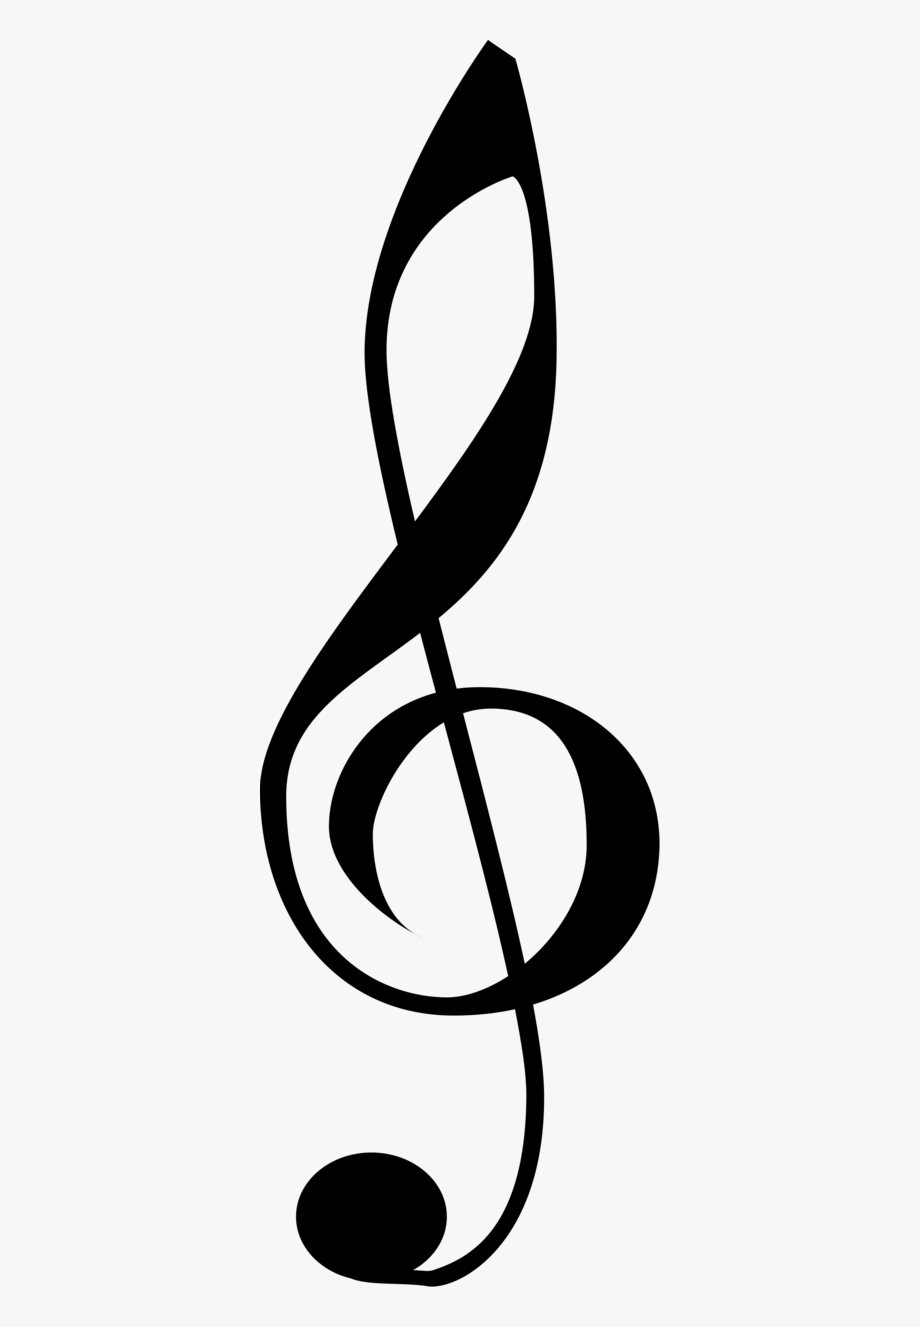 Music Clear Background.